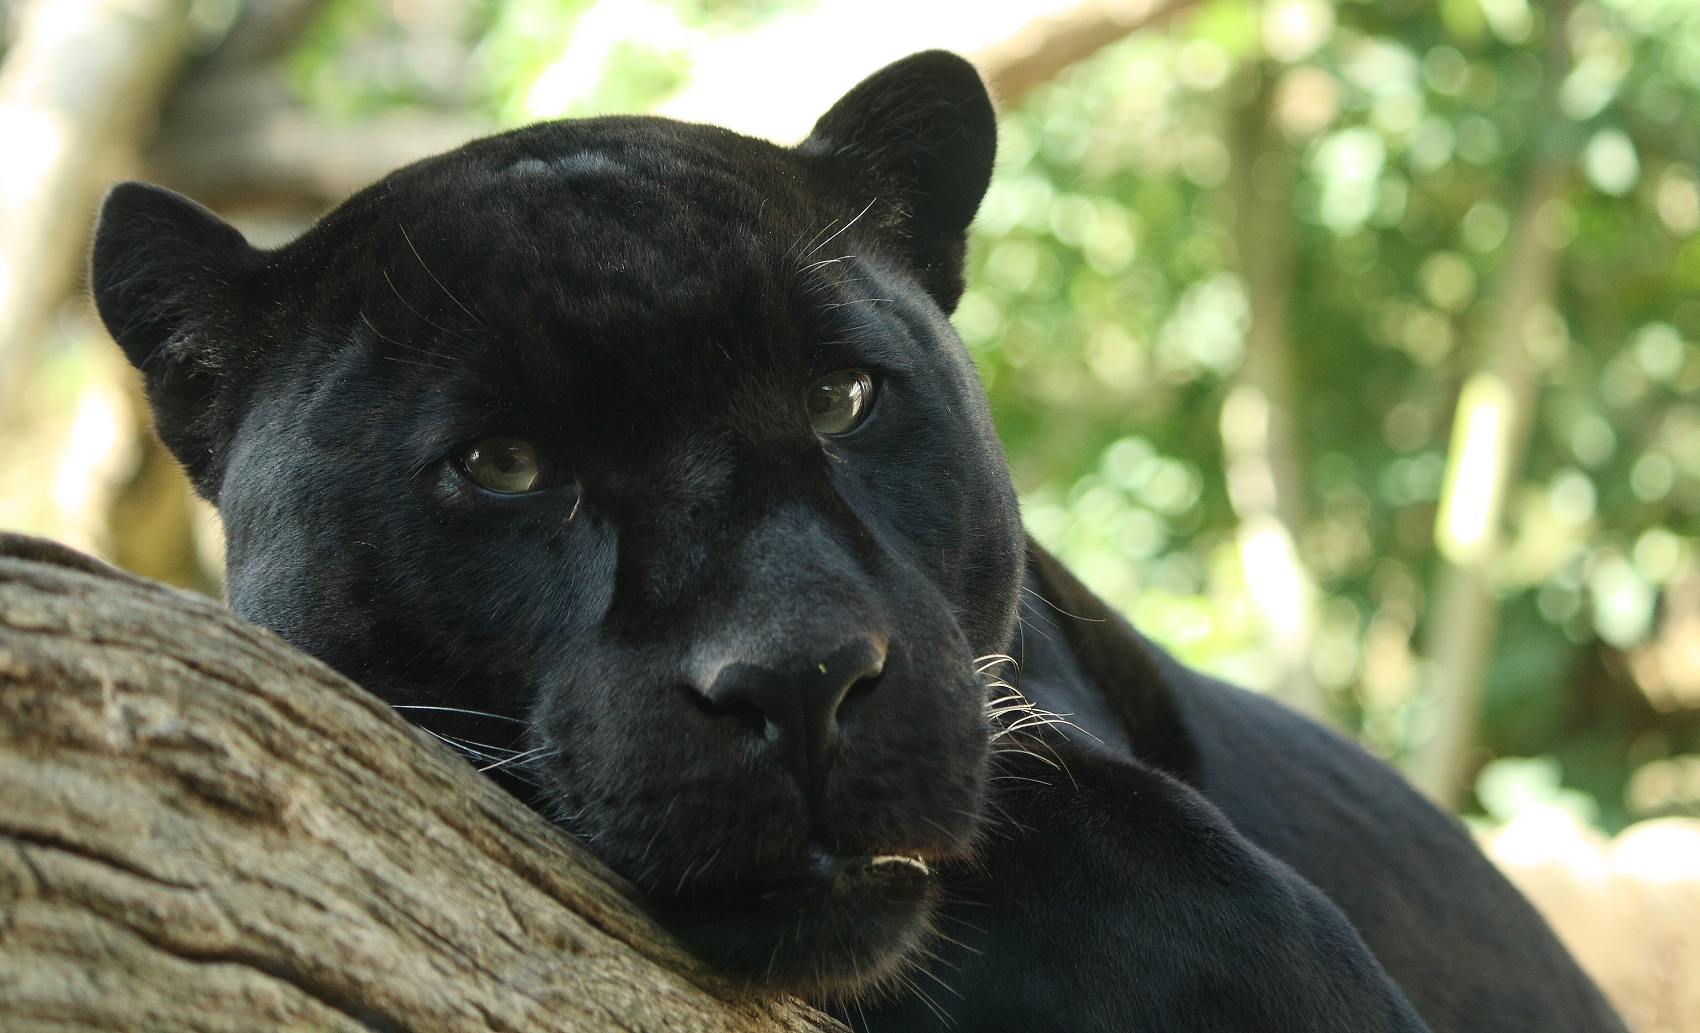 Jaguar_Cat_Picture_Black_Panther.jpg